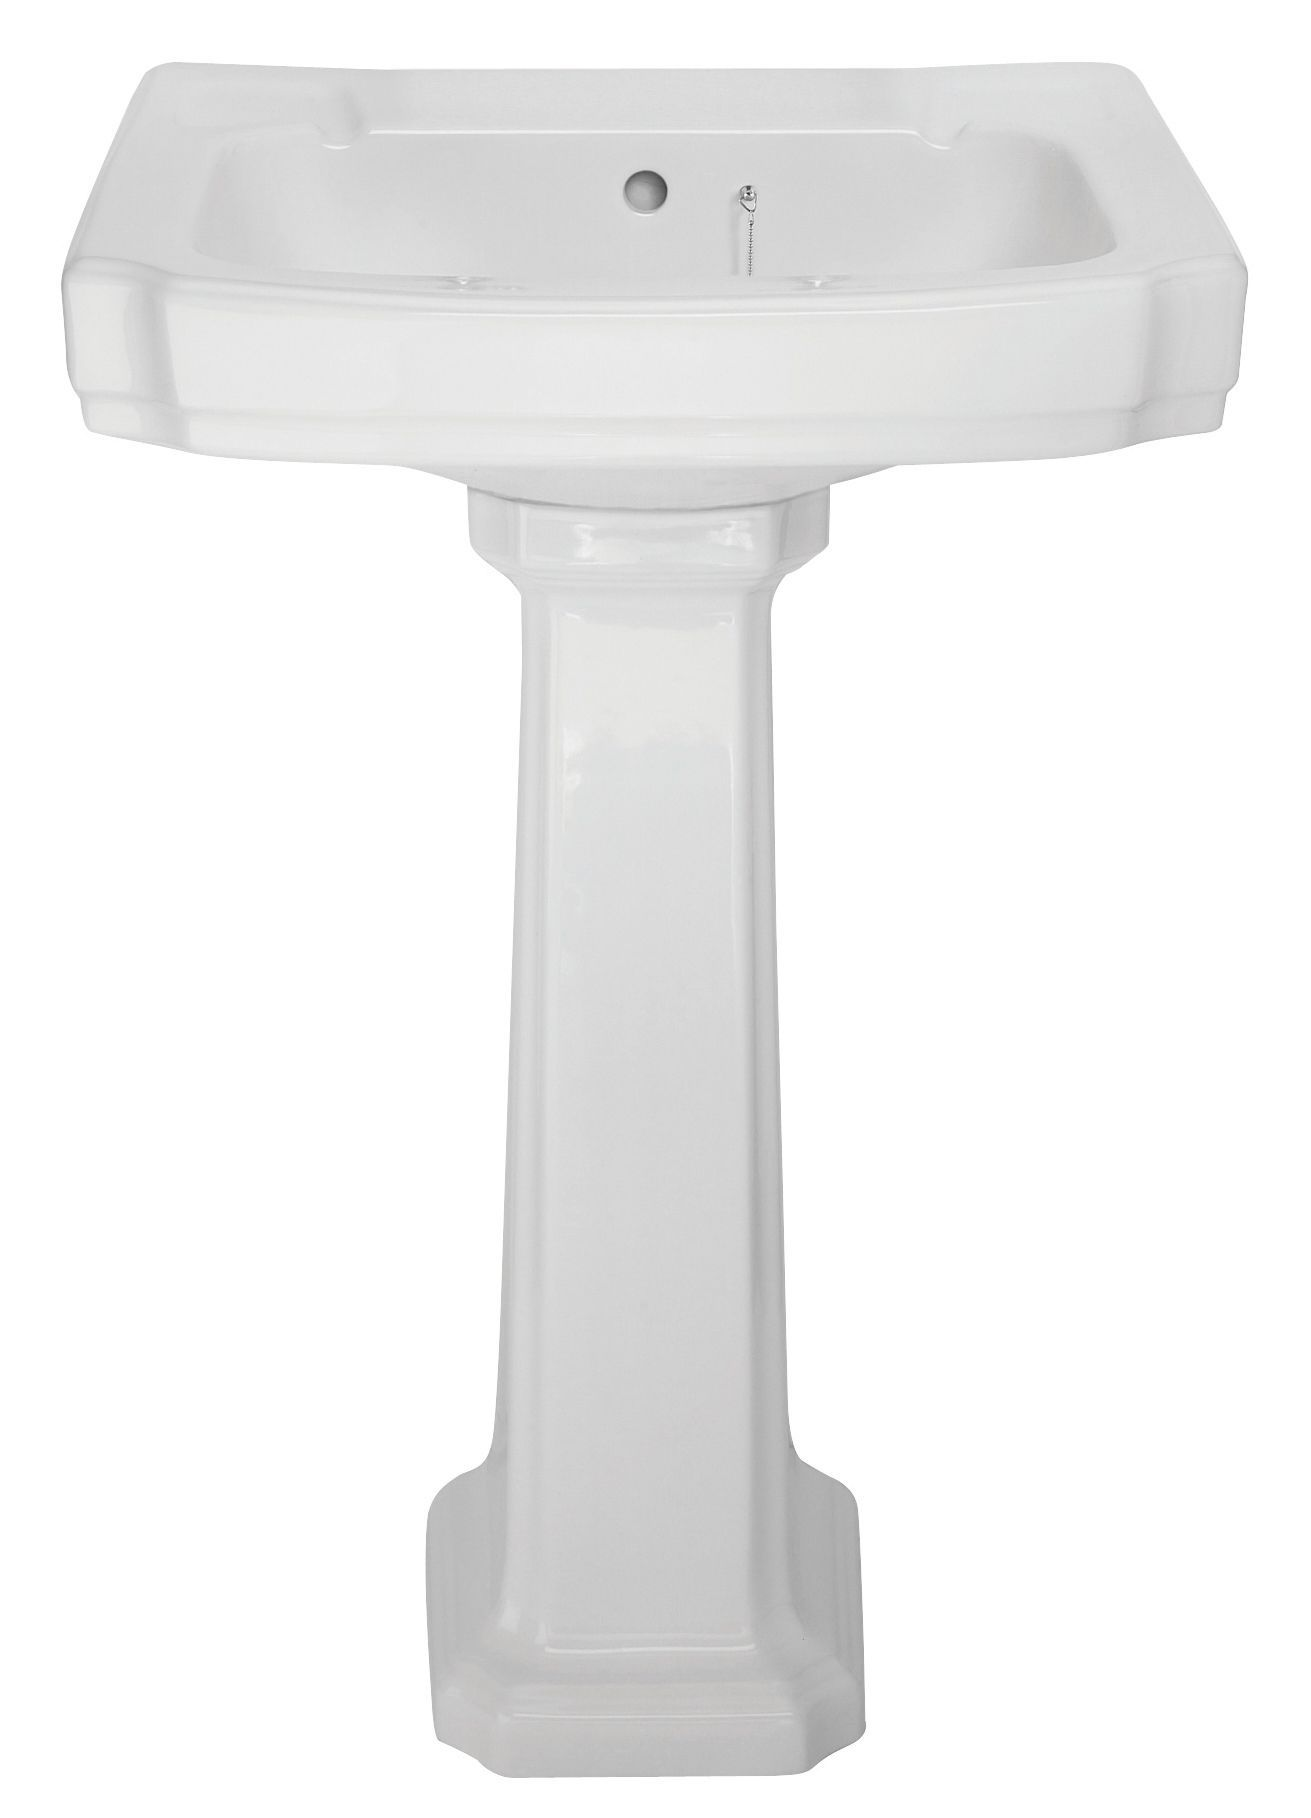 Bathroom Sinks B&Q cooke & lewis octavia full pedestal basin | pedestal basins and